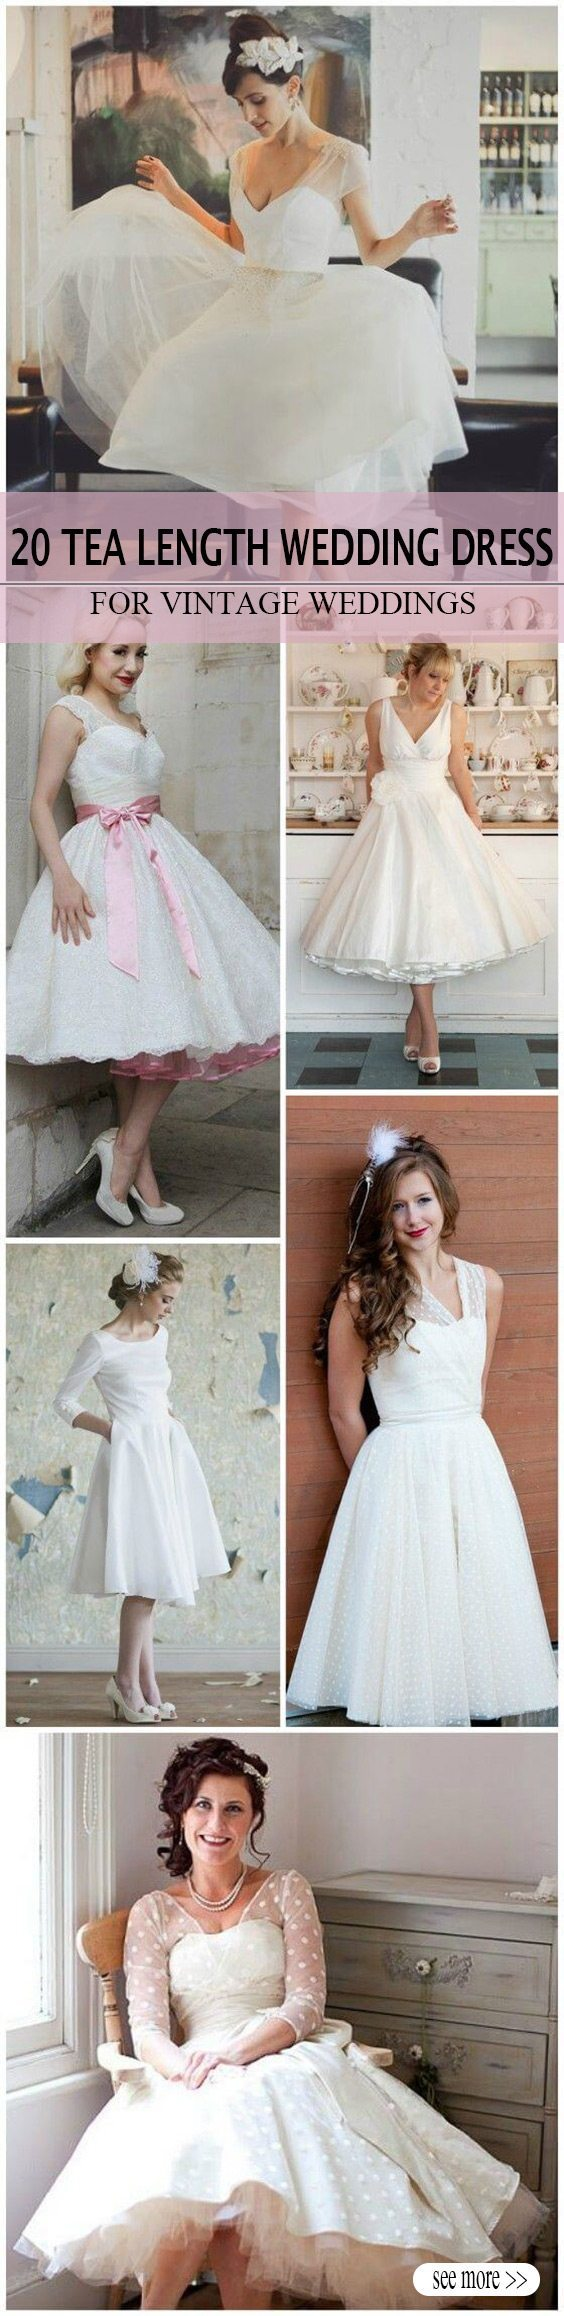 20 of the most vintage tea length wedding dresses for older bride 20 of the most vintage tea length wedding dresses for older brides ombrellifo Image collections